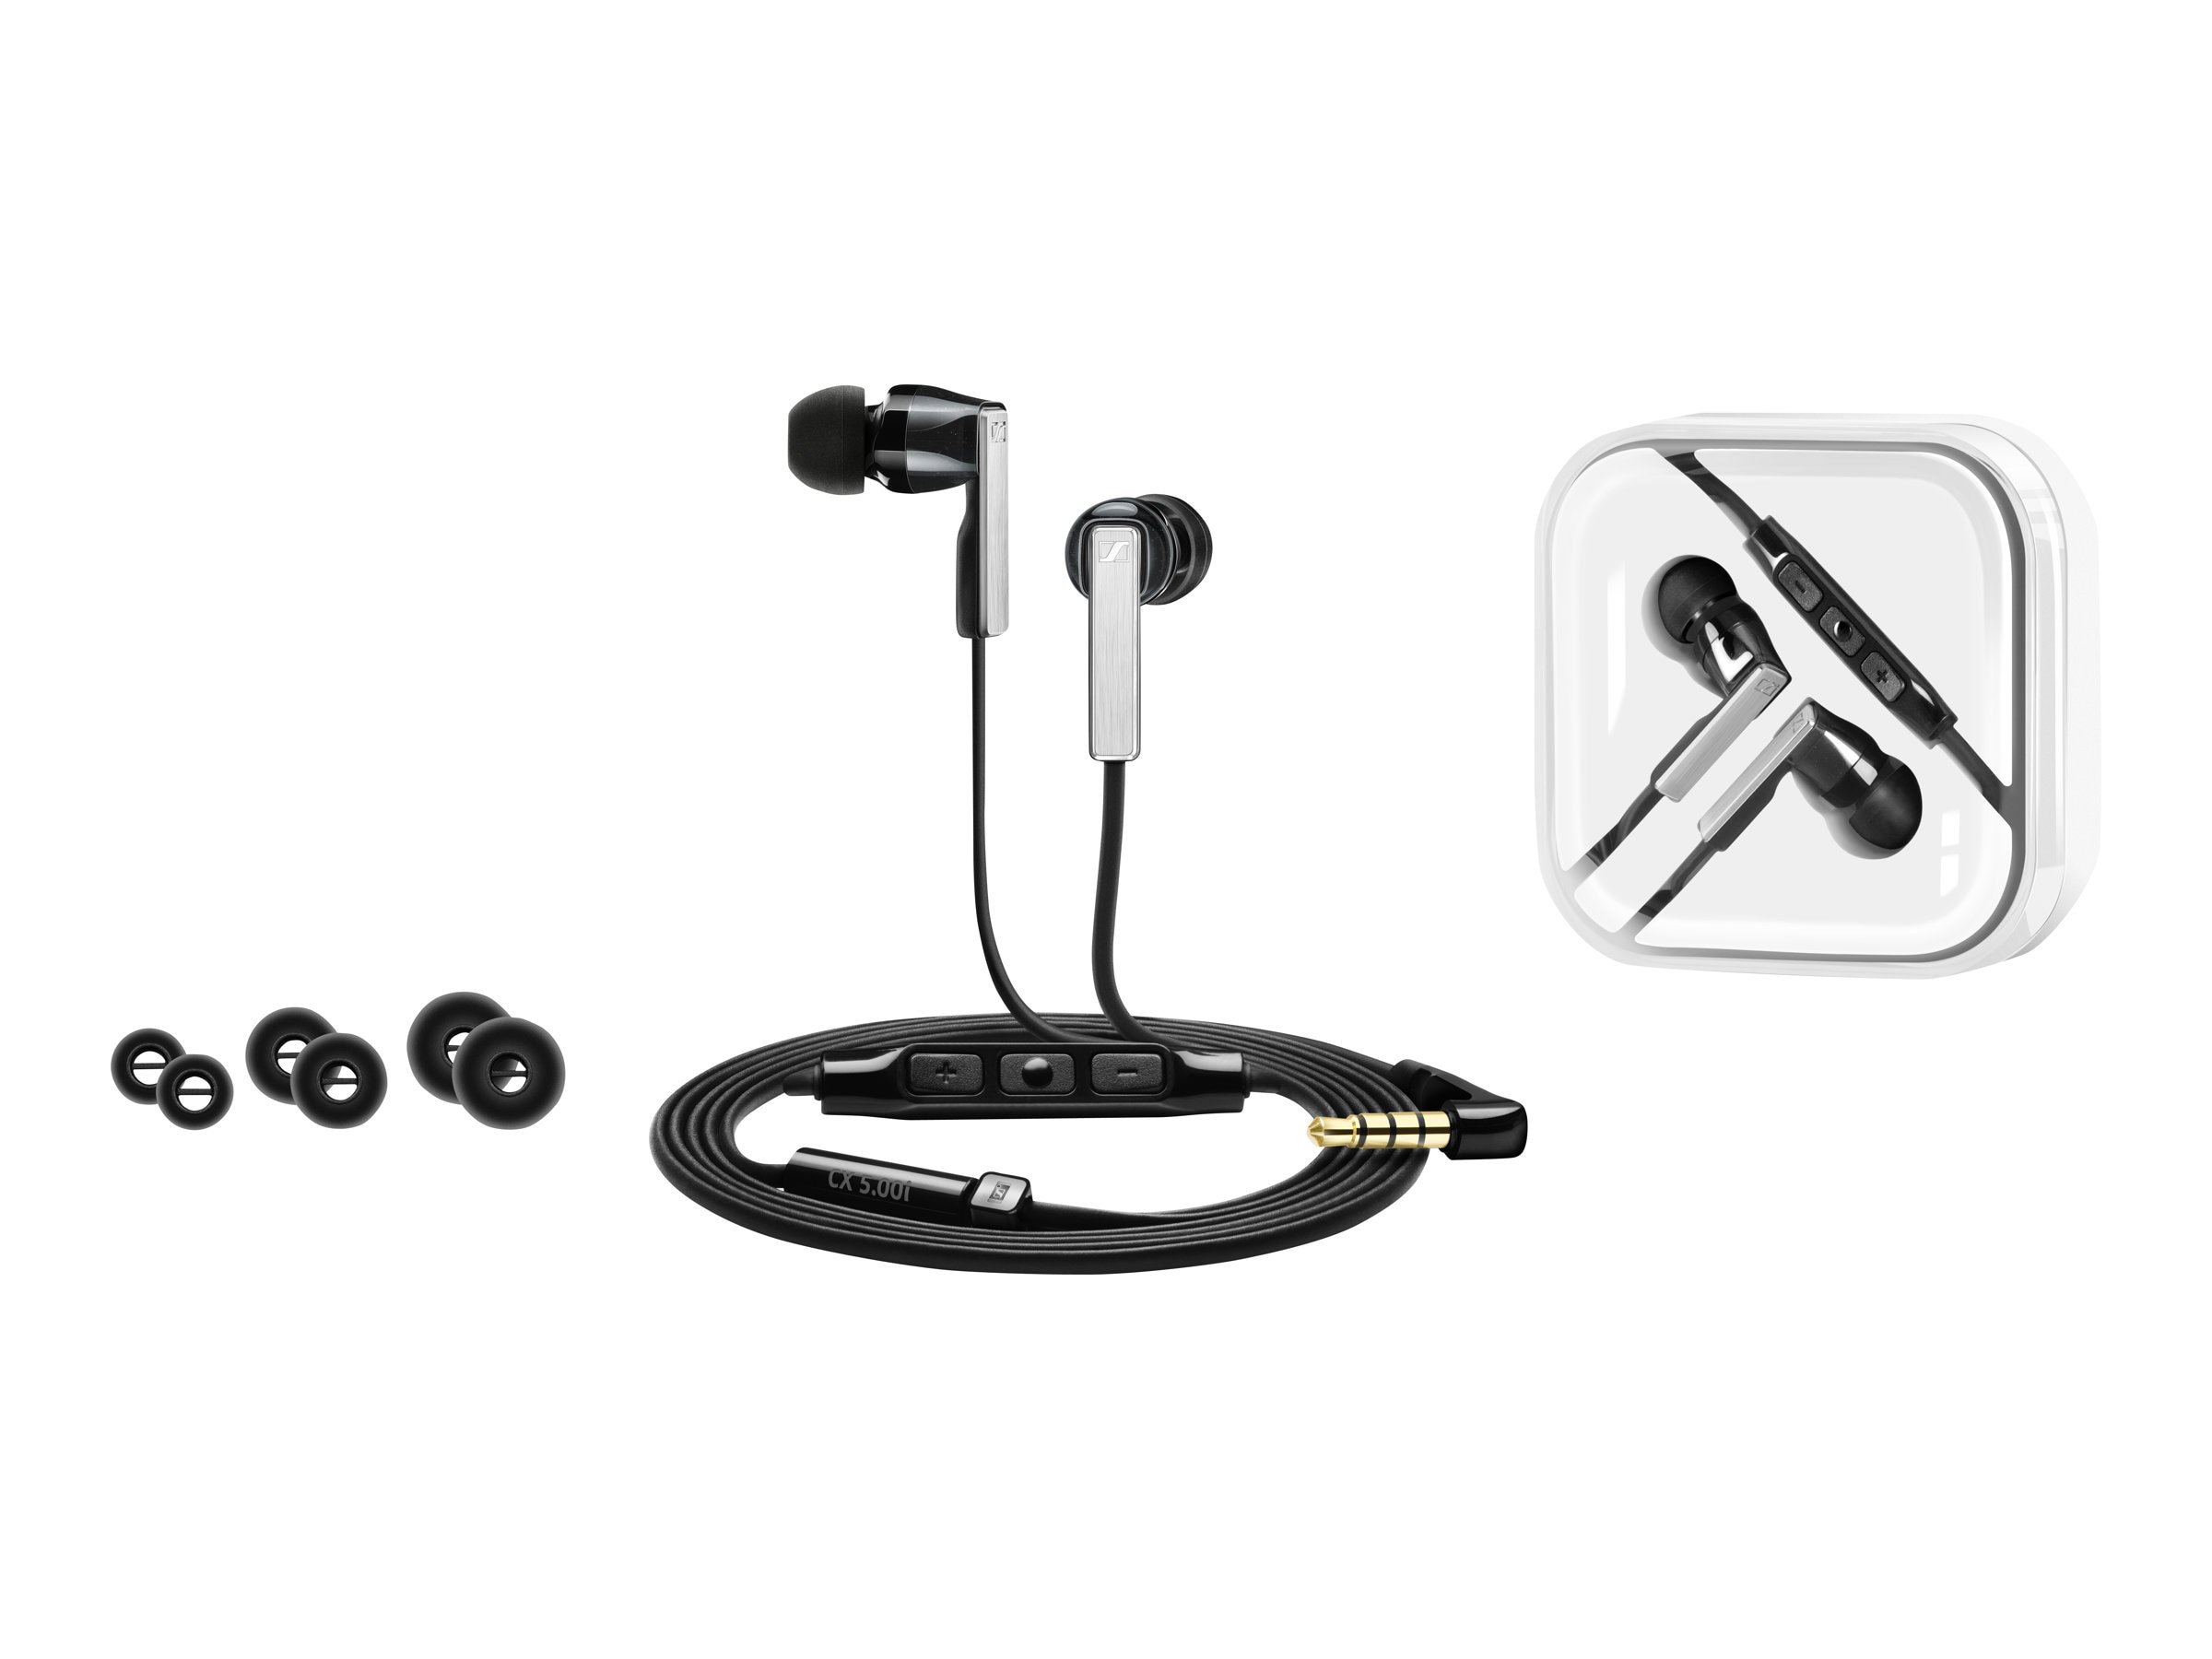 Sennheiser CX 5.00I Ear Buds - Black, 506233